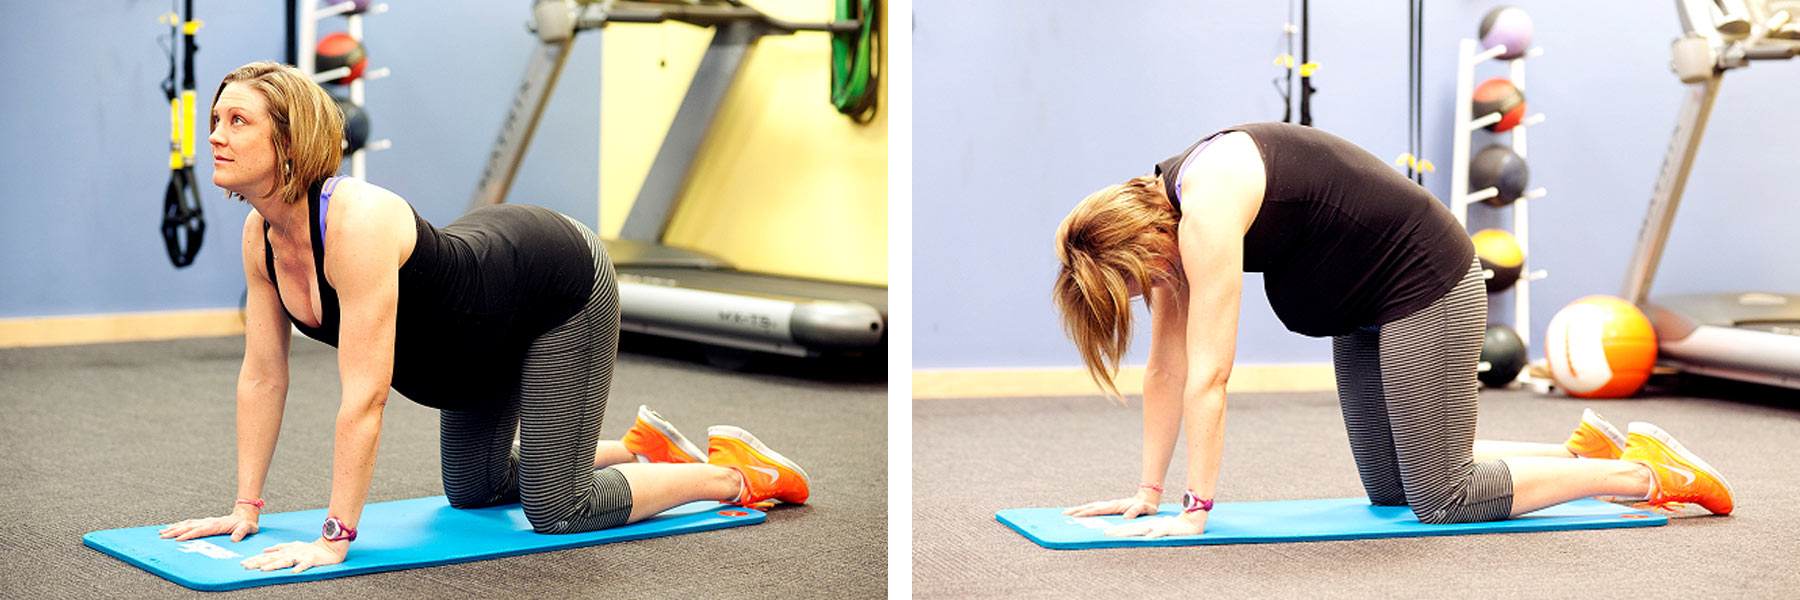 Prenatal Fitness Modifications For Safety and Comfort